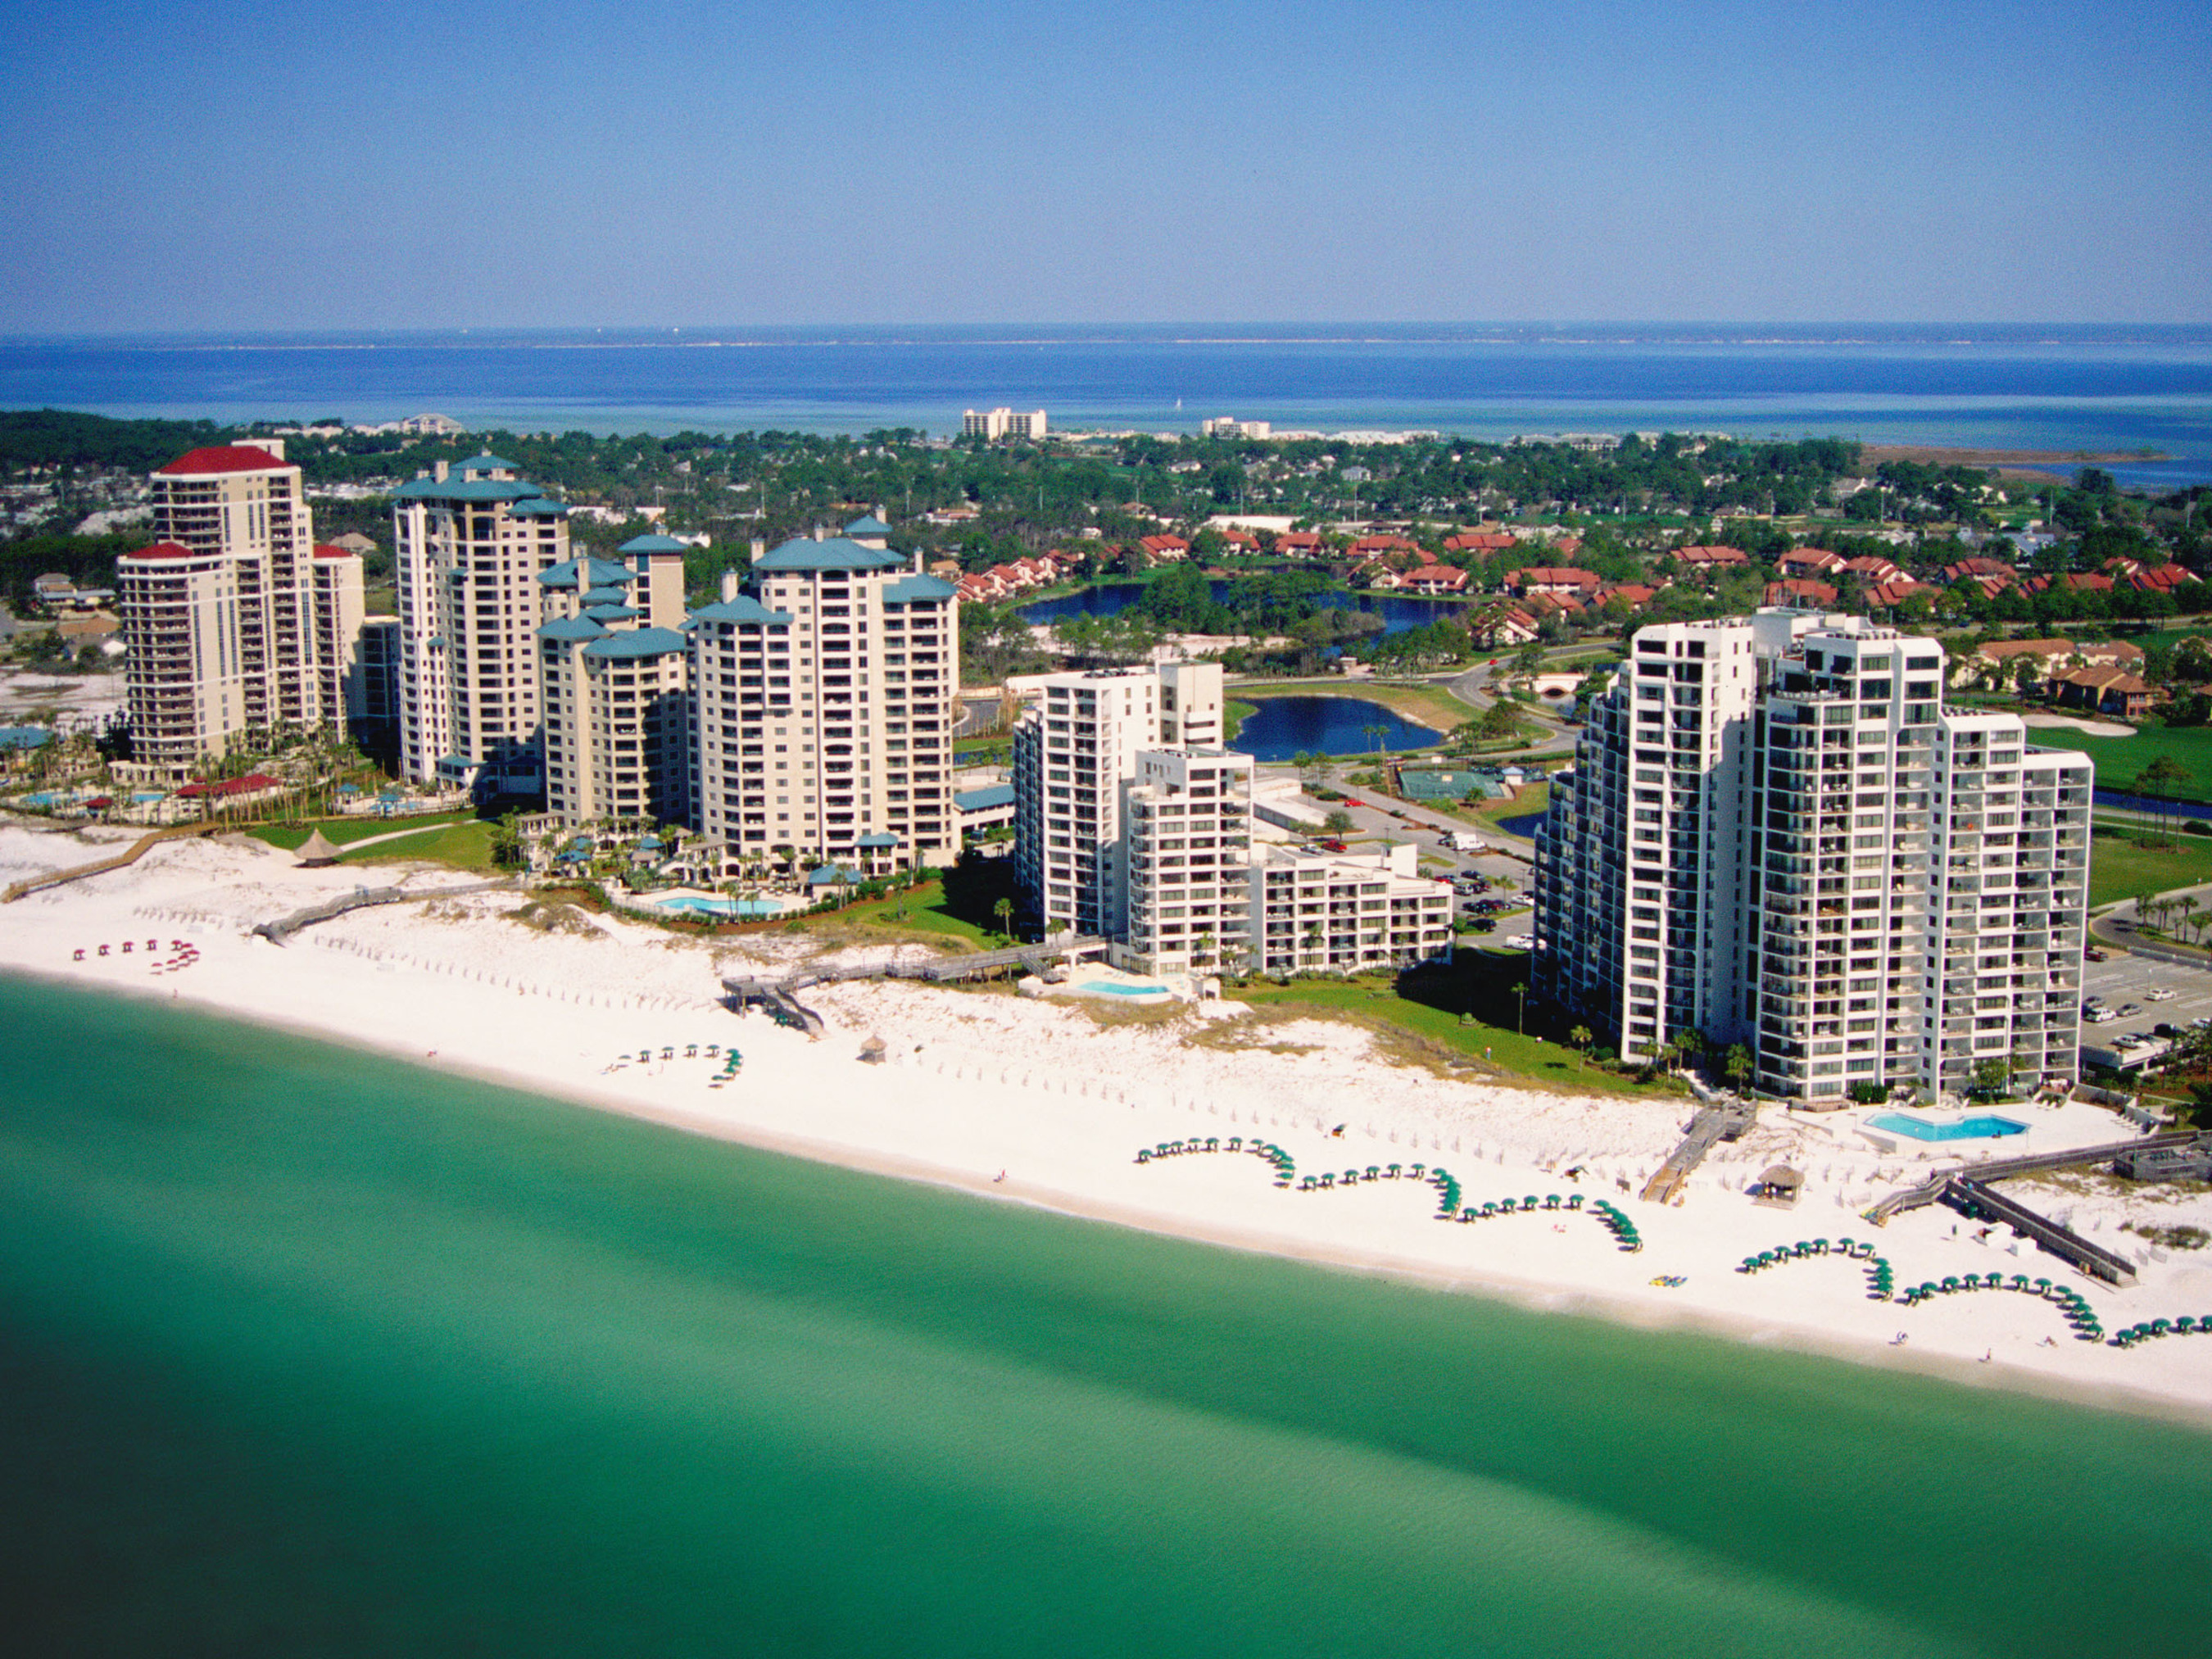 Sandestin Golf And Beach Resort Named 1 Hotel In Destin By U S News World